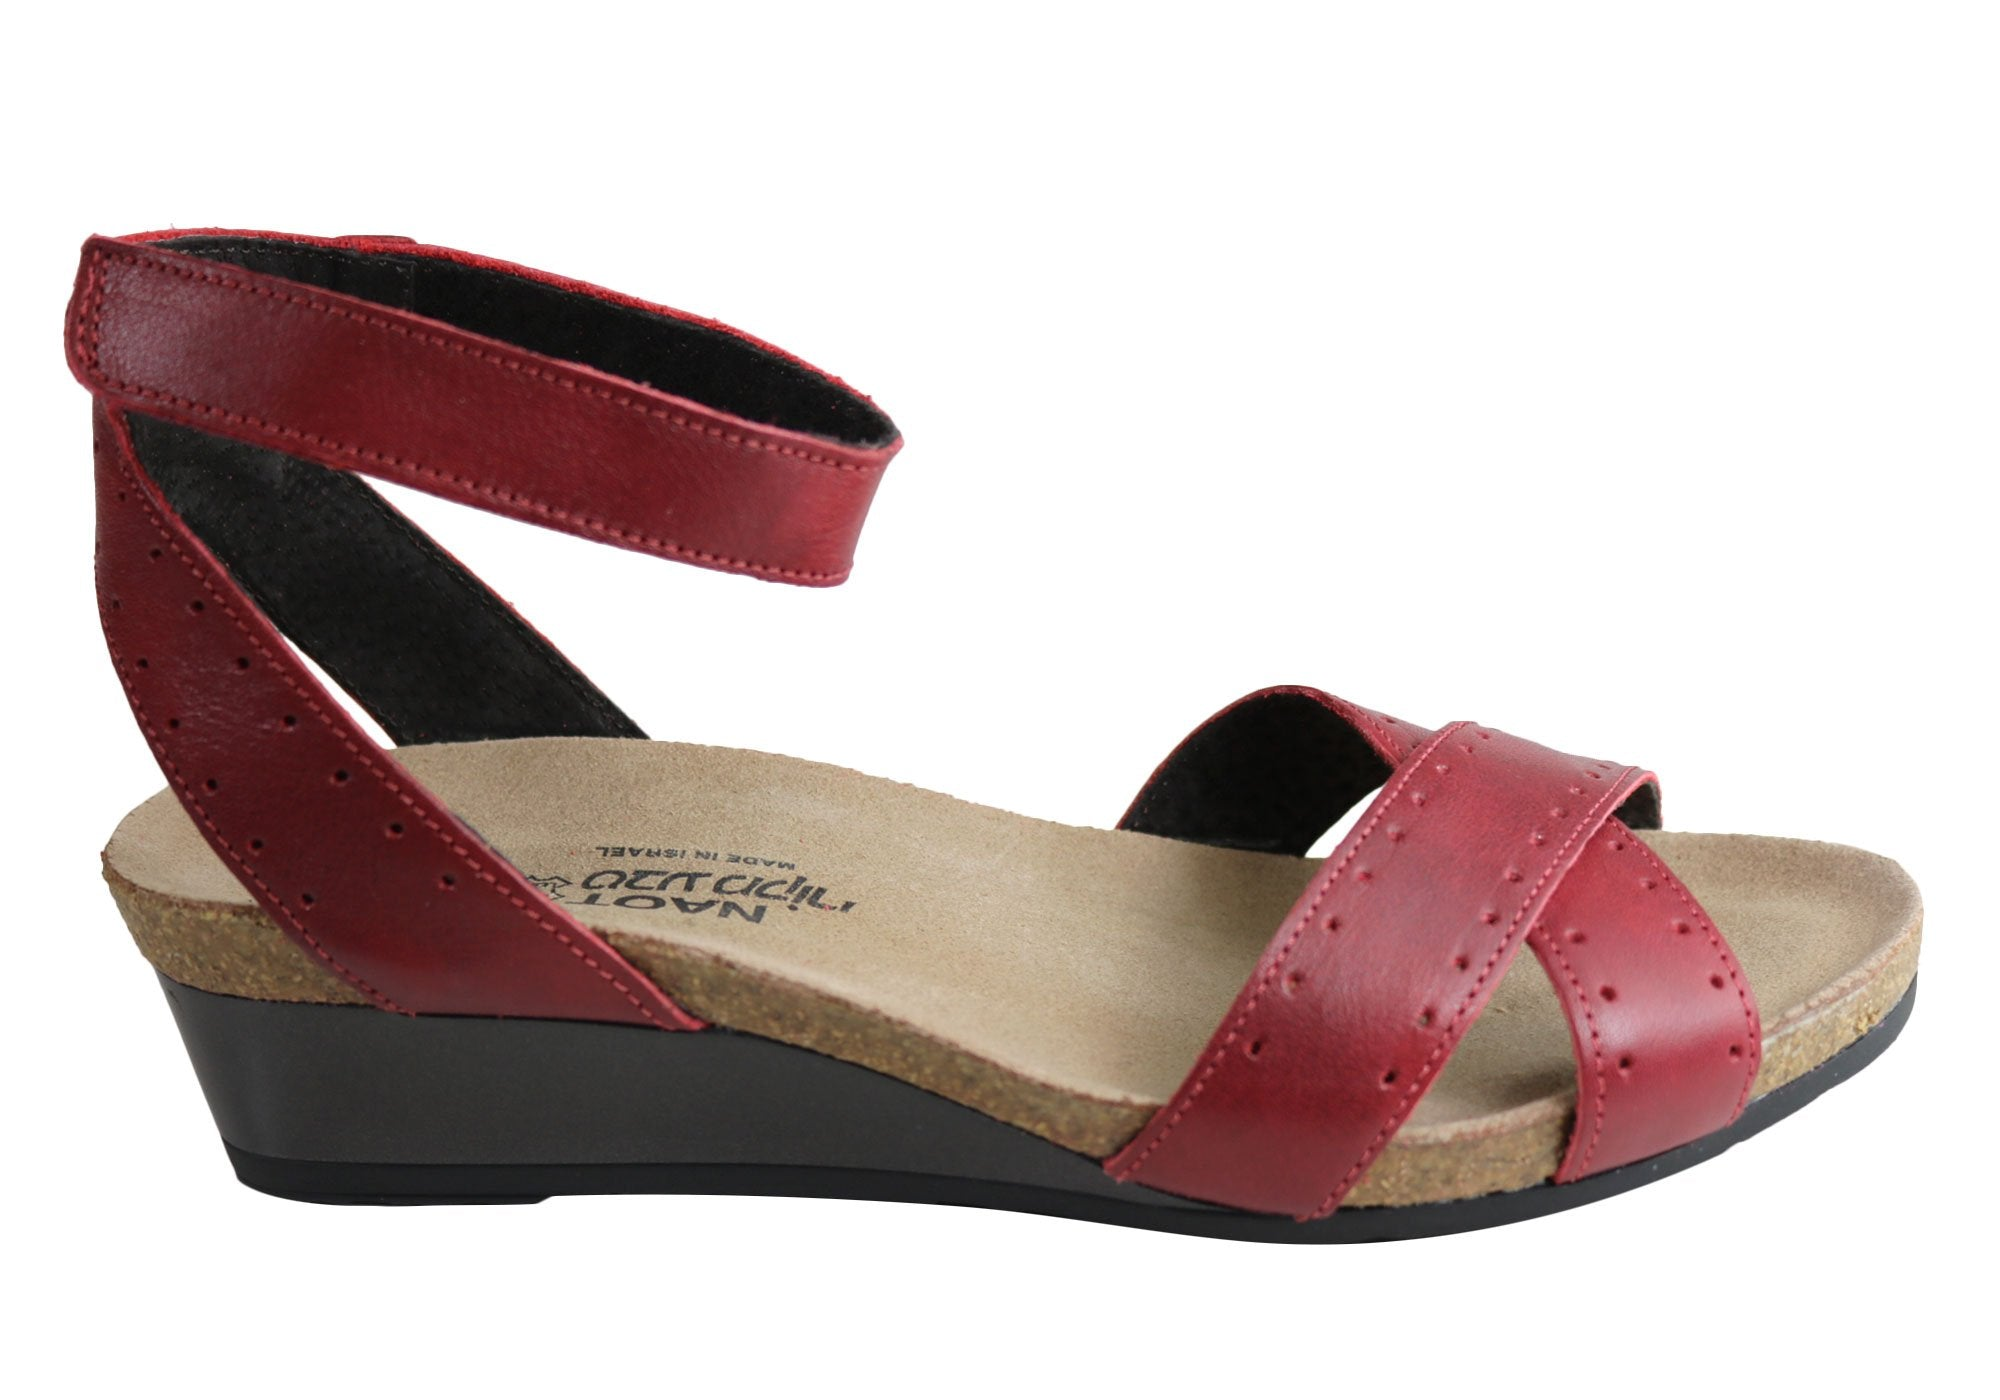 Naot Wand Womens Leather Comfortable Wedge Sandals | Brand